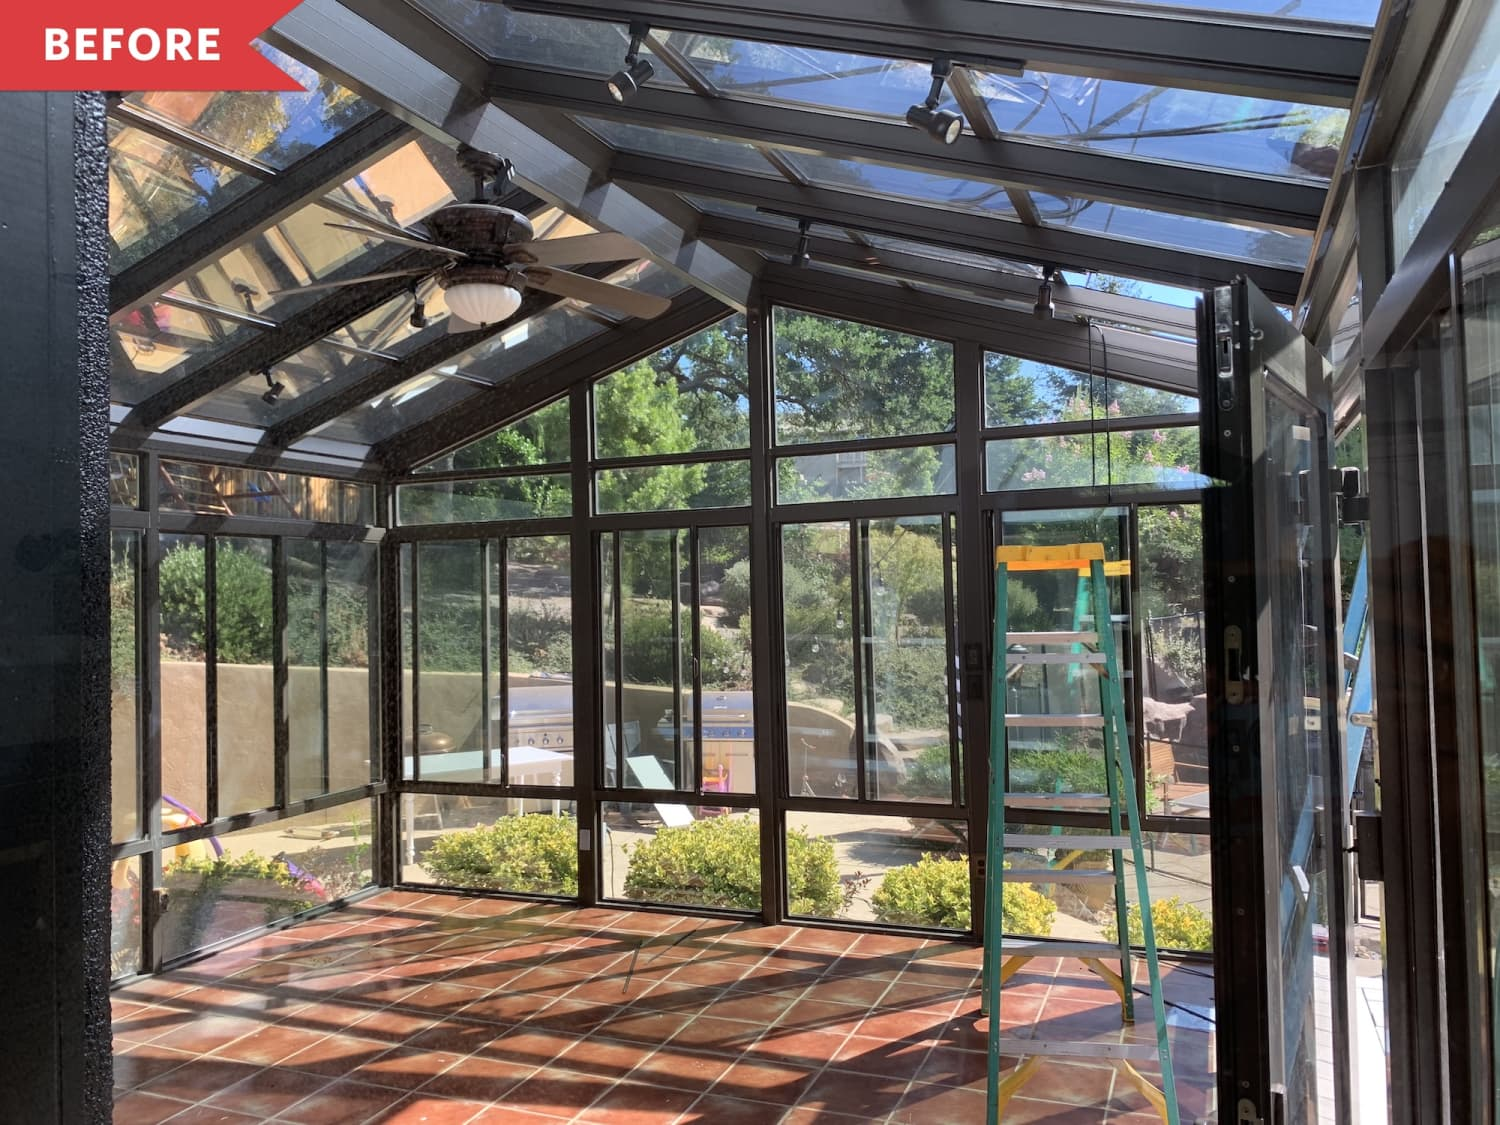 Before and After: This Sunroom's Before is Good, But Its After is a Stunner